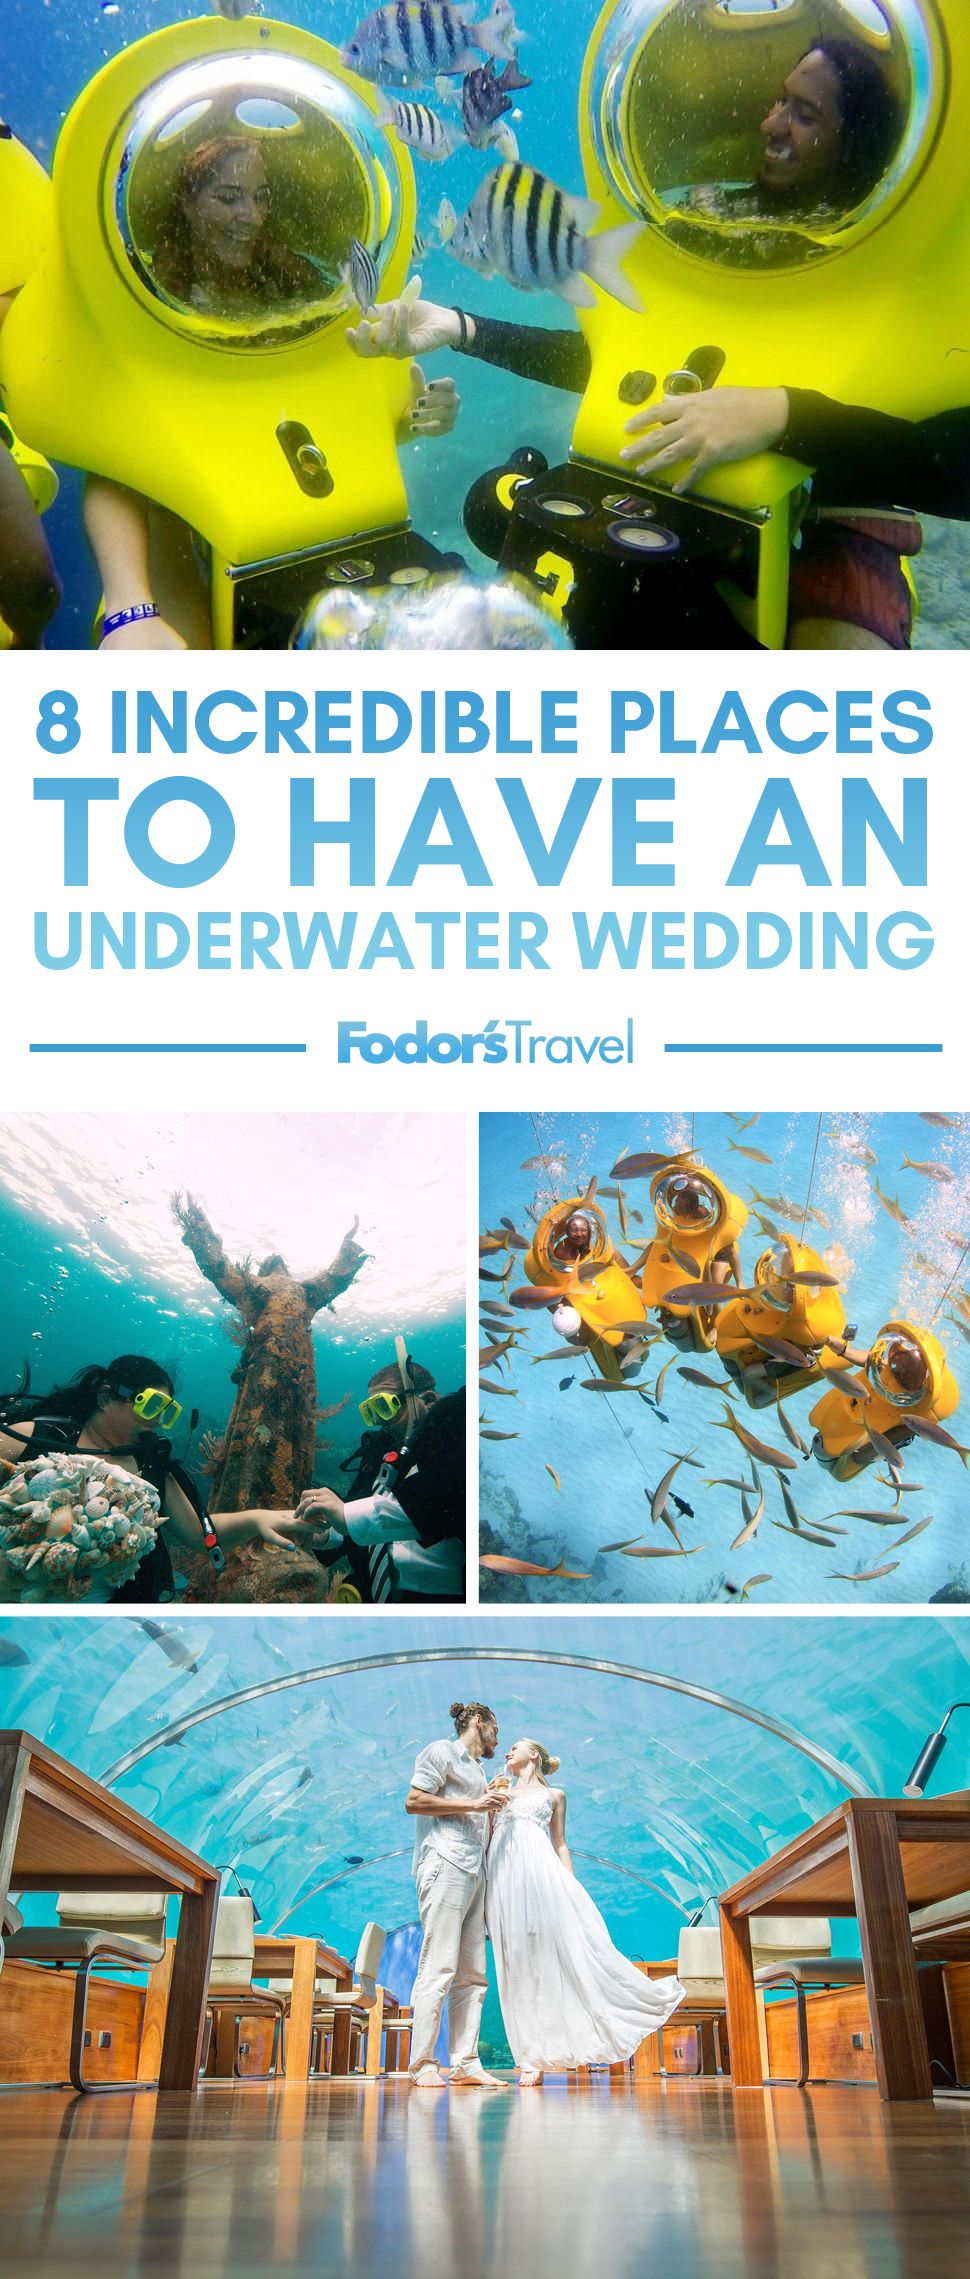 8 Incredible Places to Have an Underwater Wedding